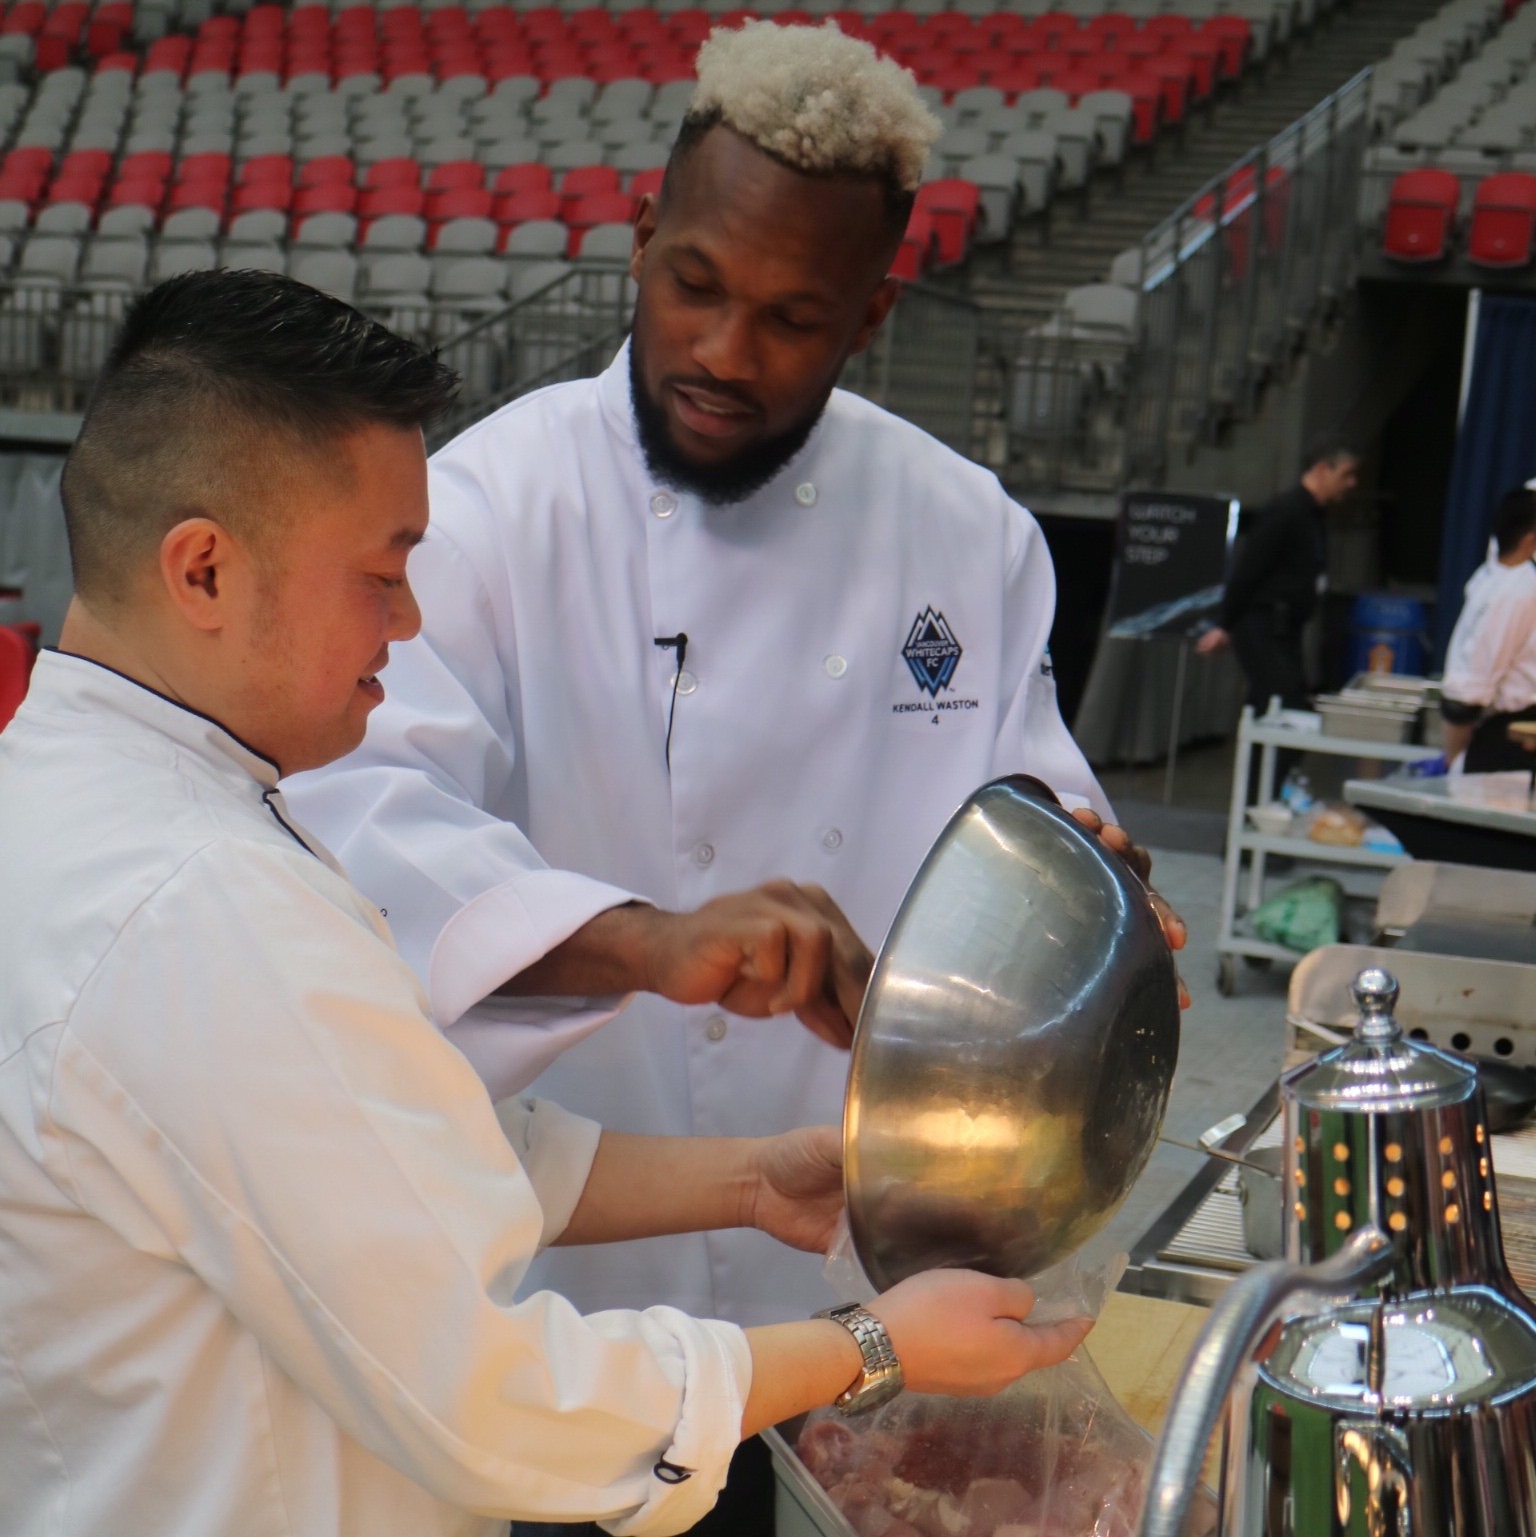 Centerplate's executive chef Will Tse and Whitecaps FC captain Kendall Waston